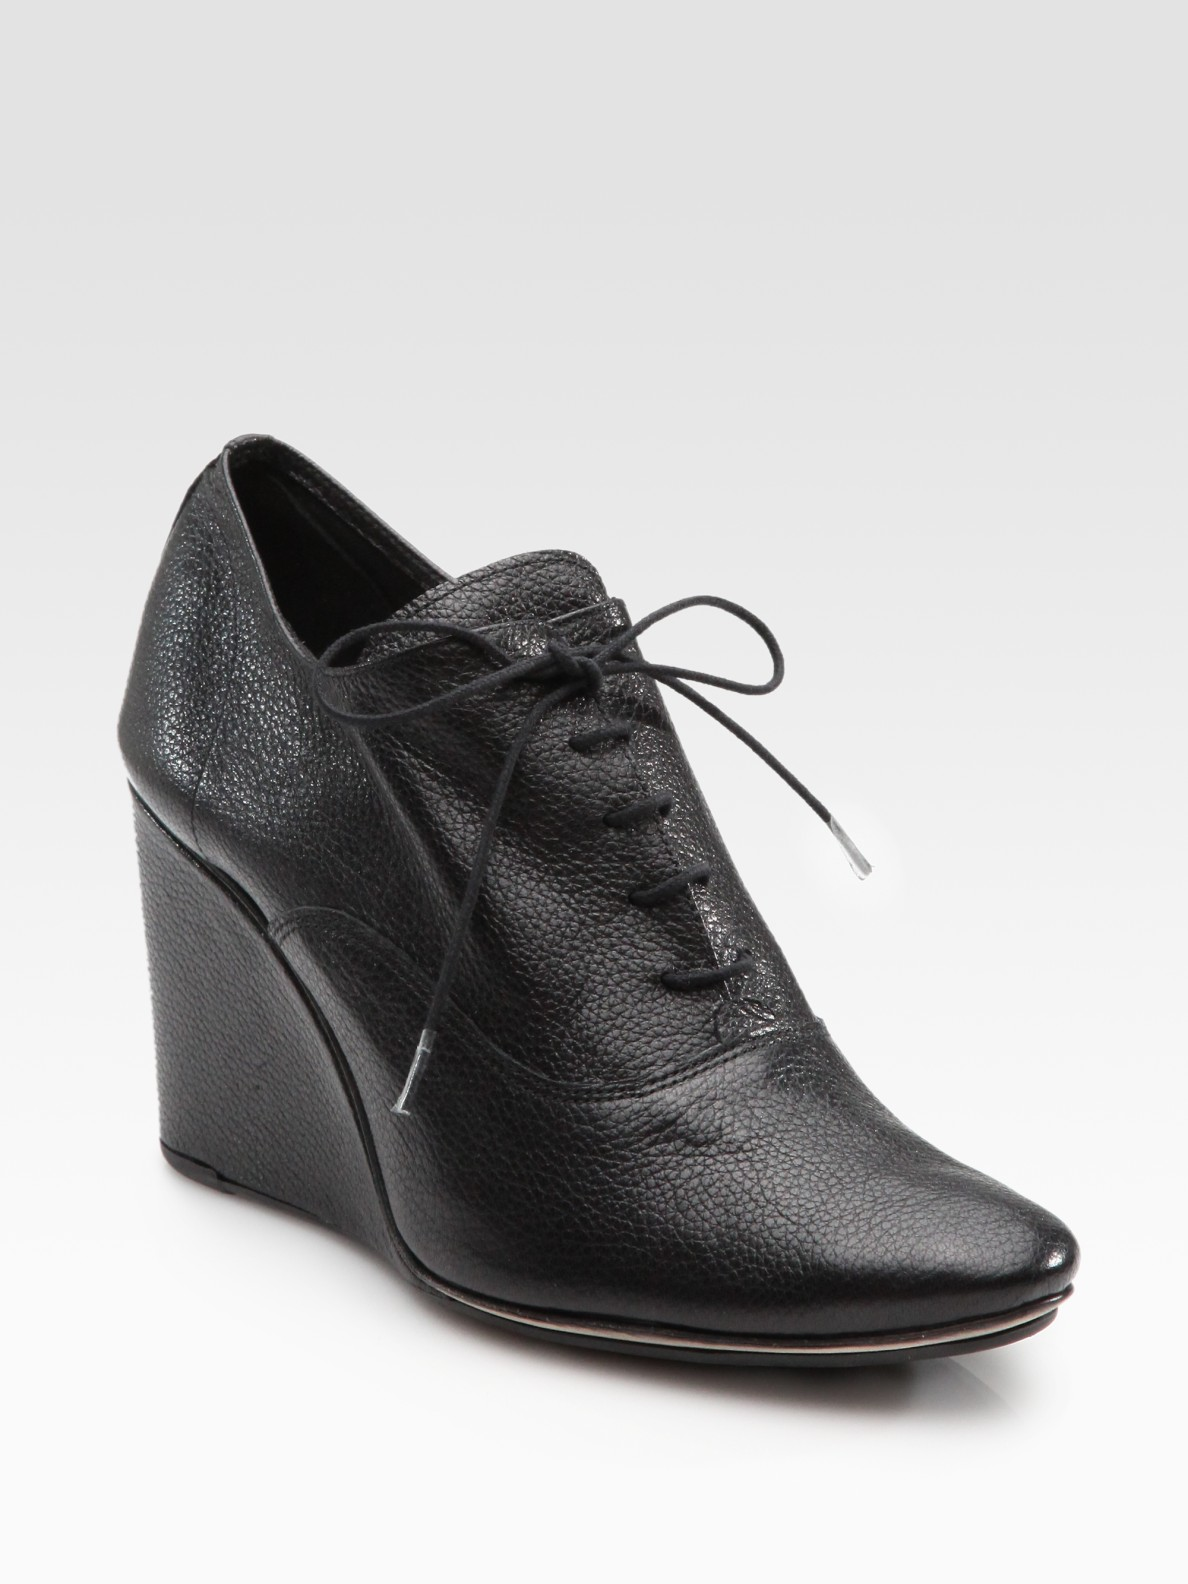 repetto orson lace up grain leather wedge ankle boots in